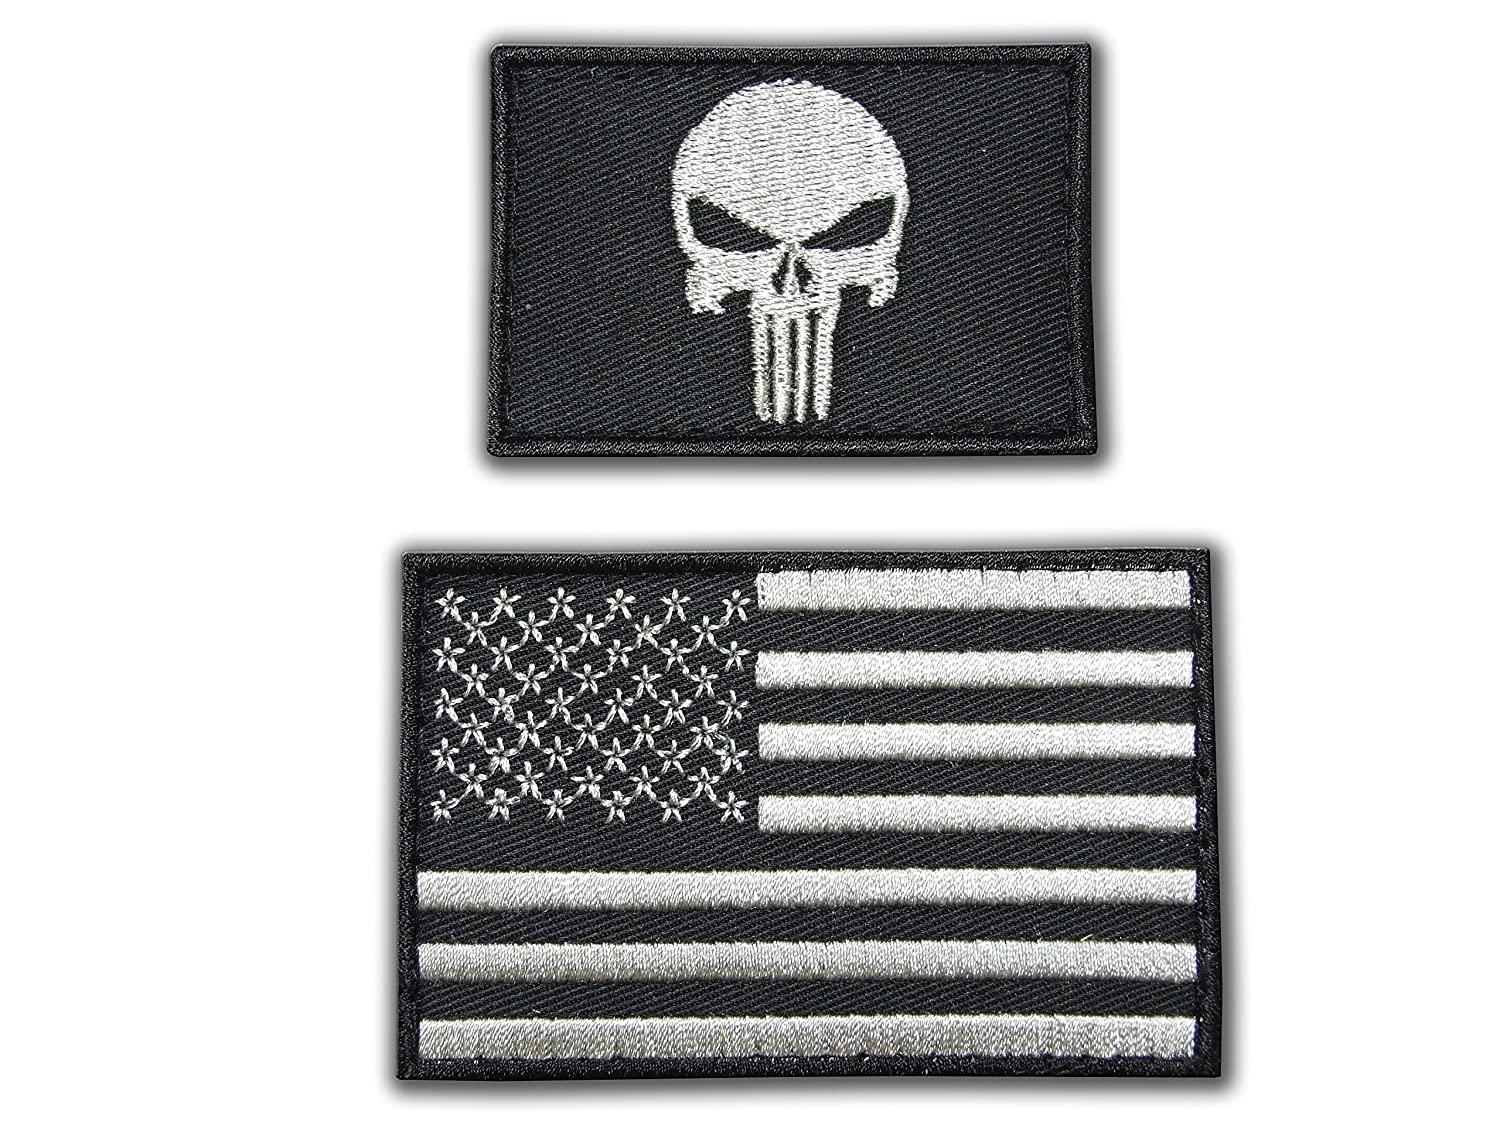 Bande velcro touchlines punisher tactical military morale outlaw skull motard /écusson